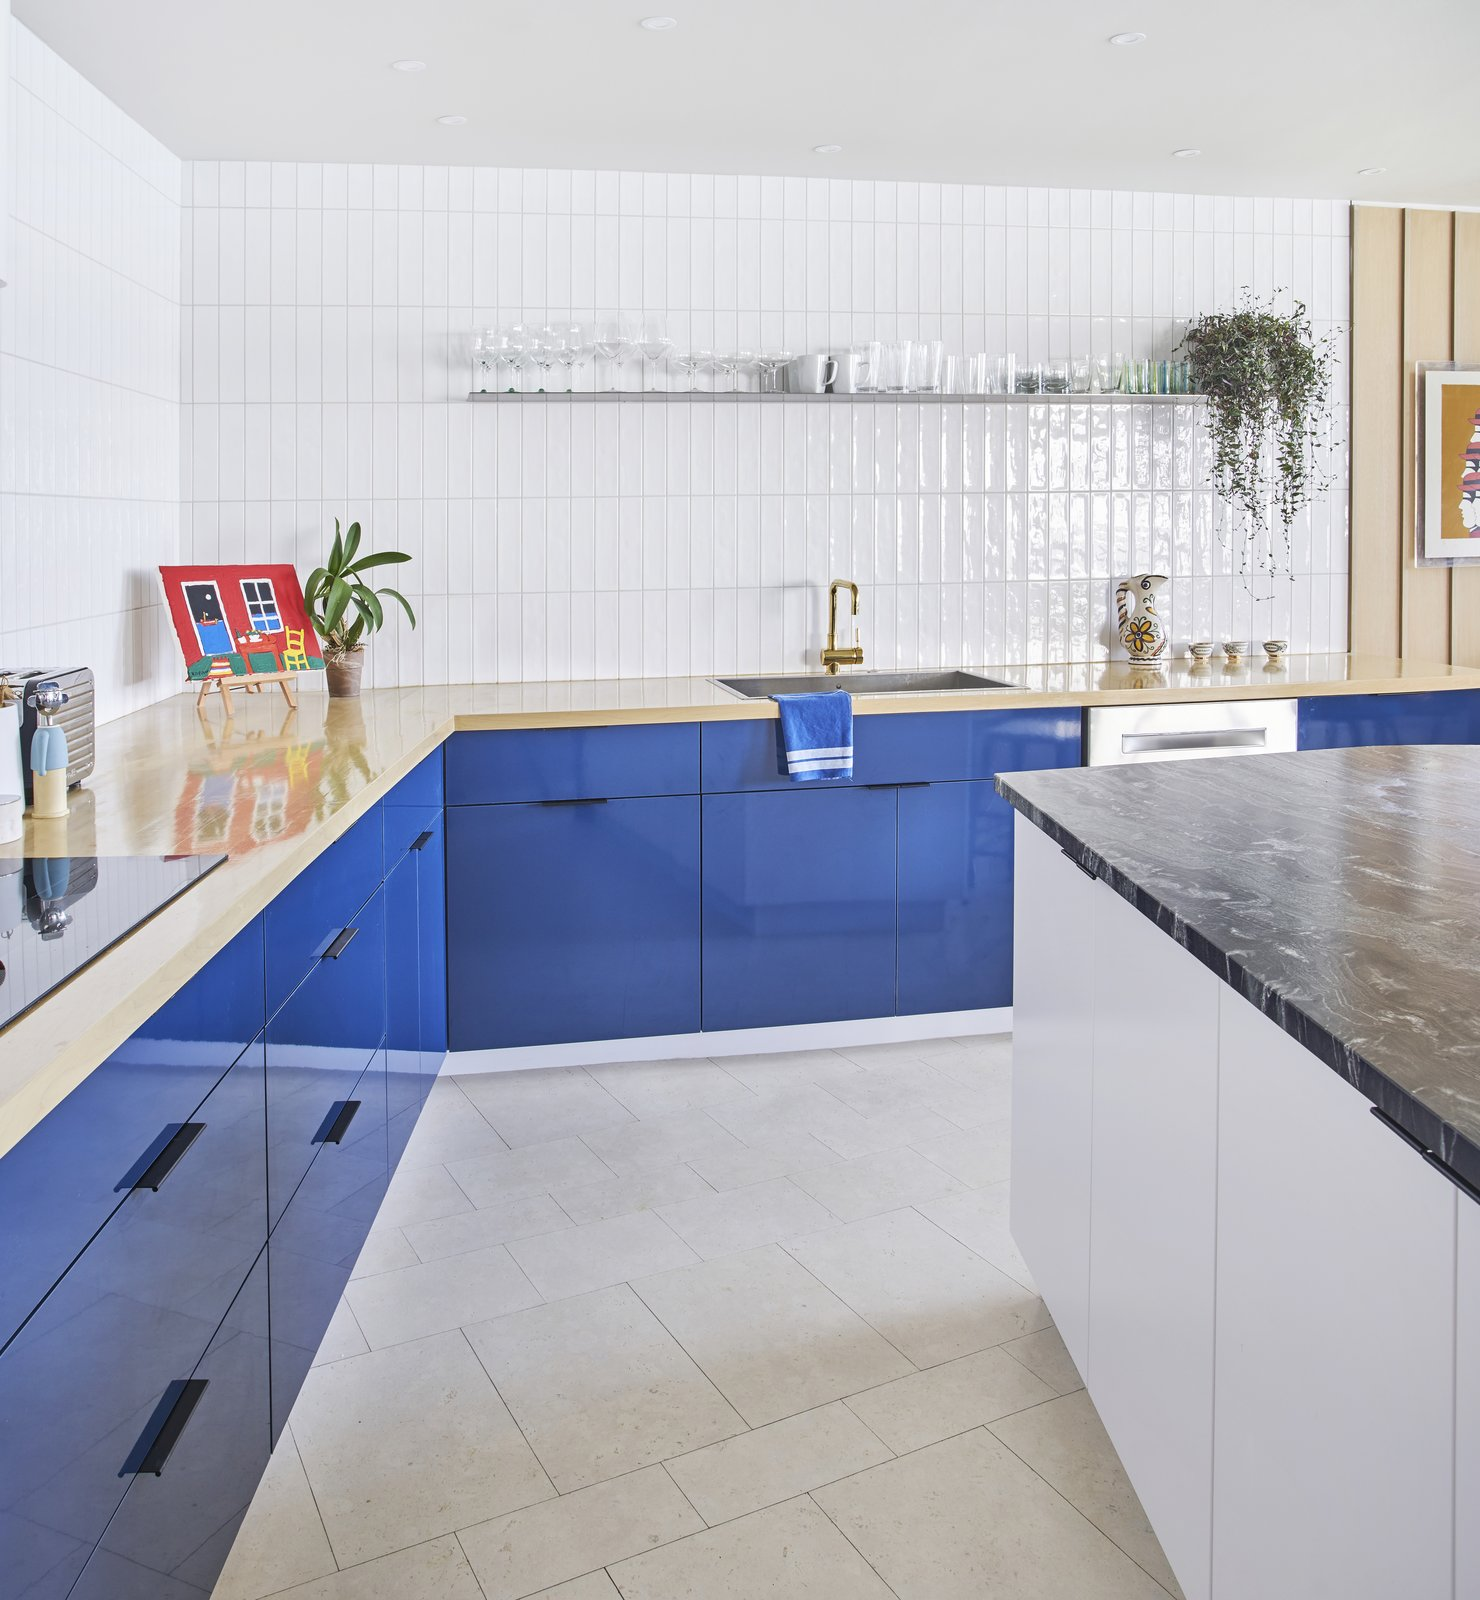 6 Flooring Options to Consider For Your Next Kitchen Renovation ...